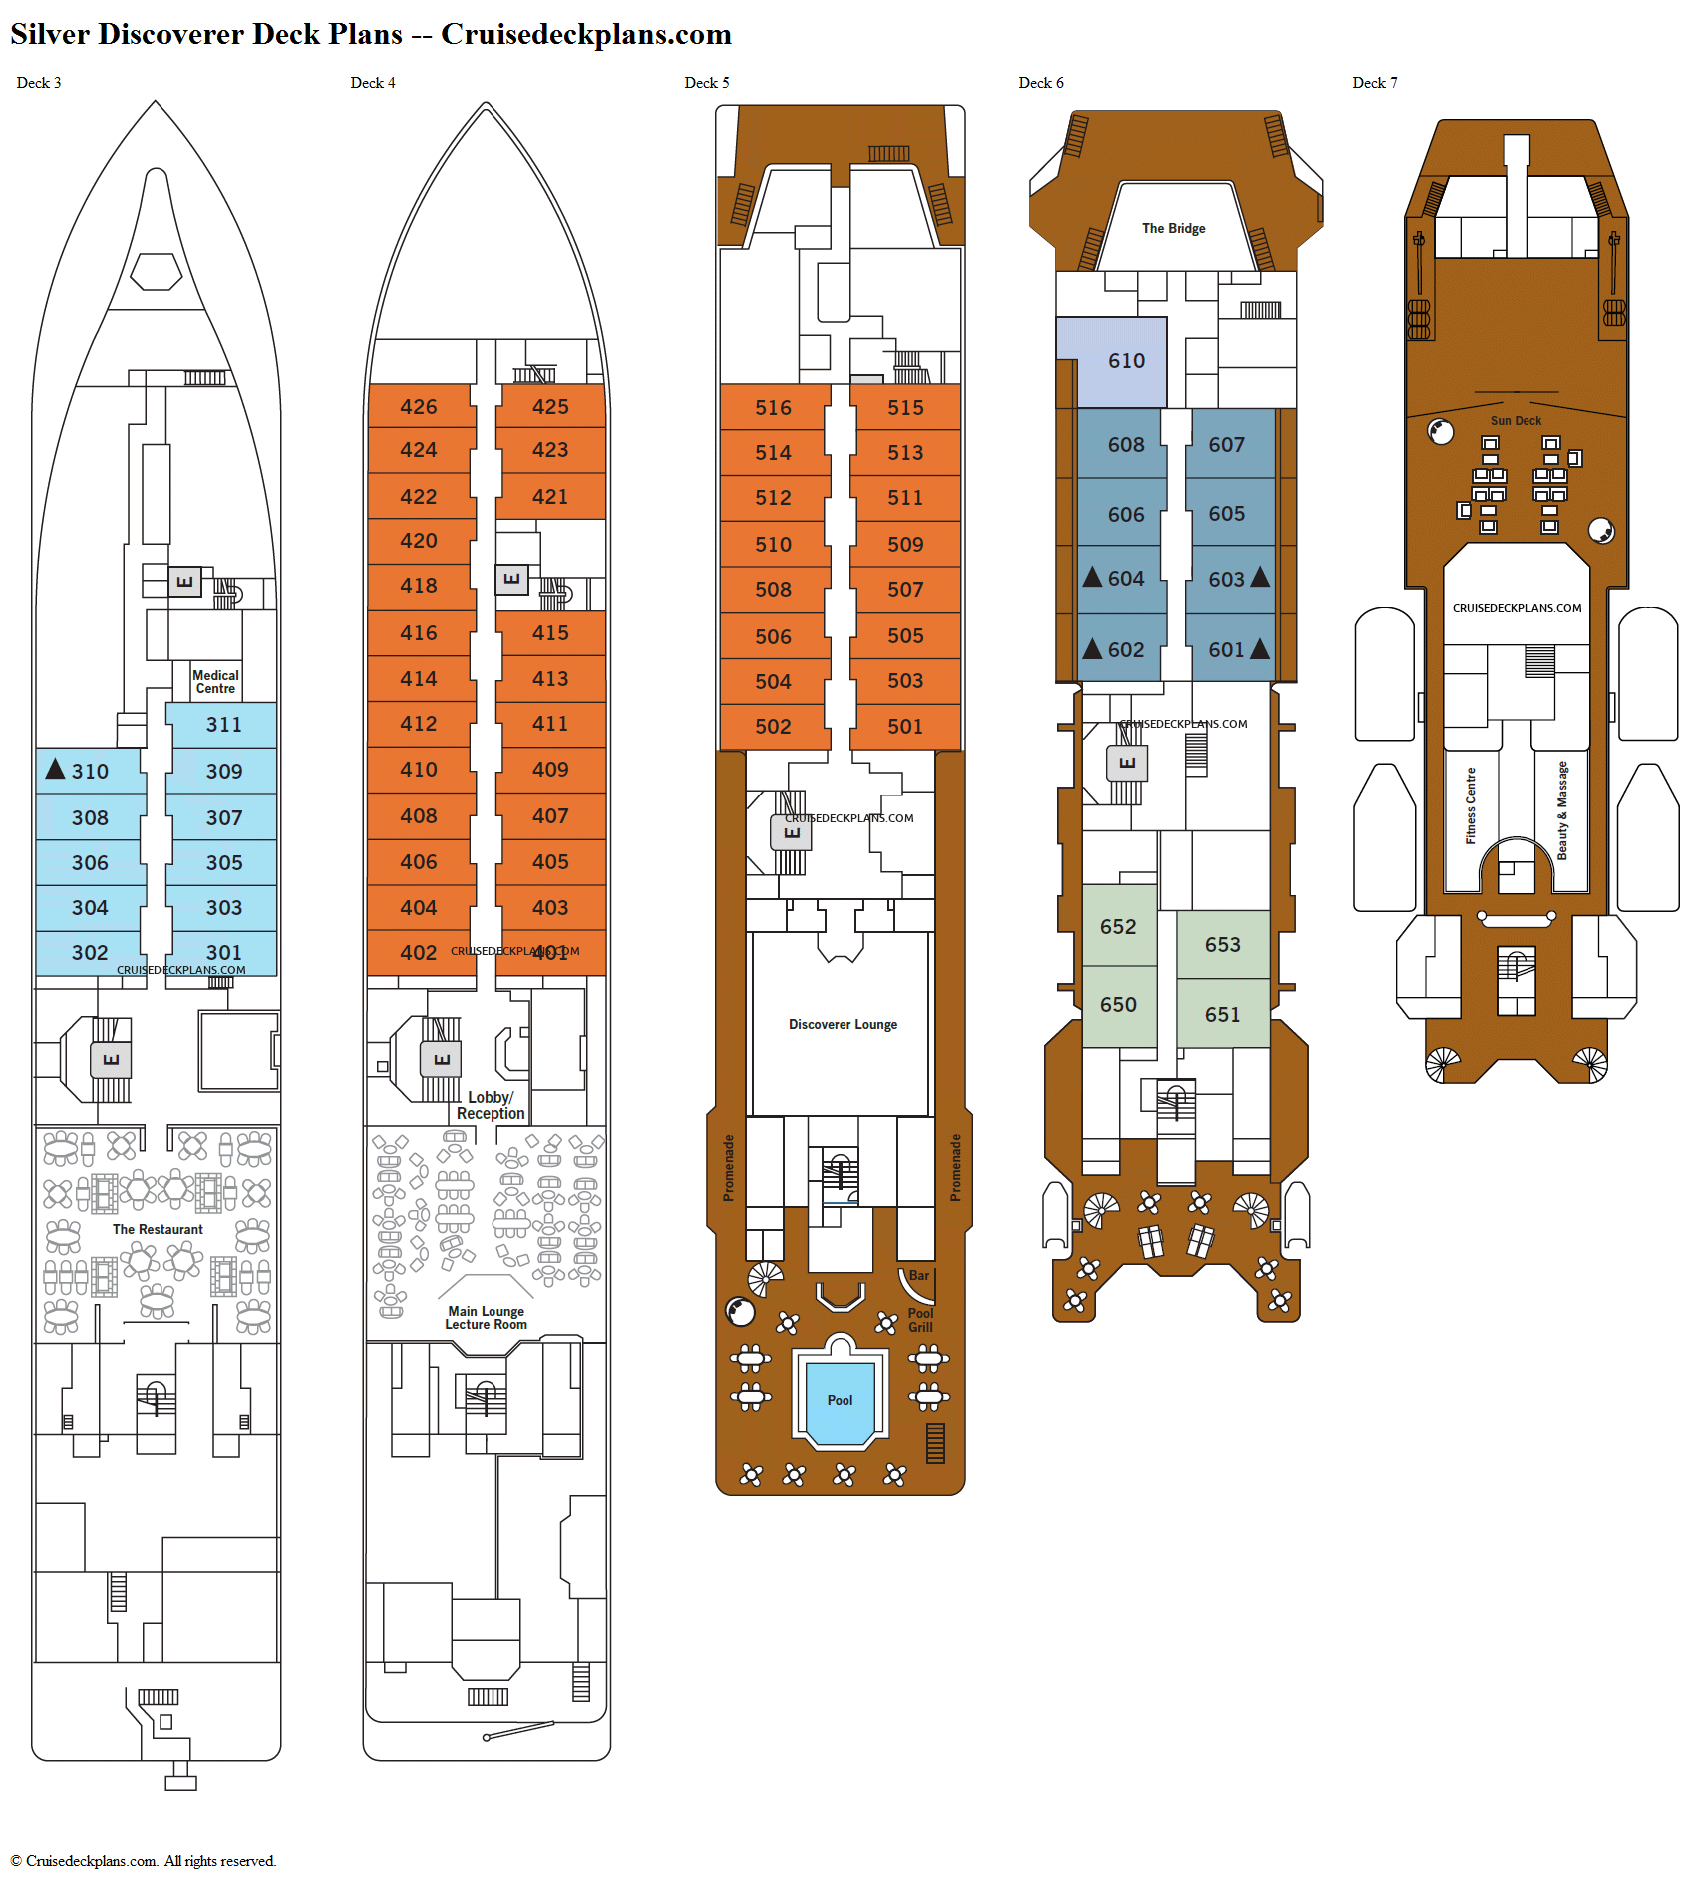 Silver Discoverer deck plans image